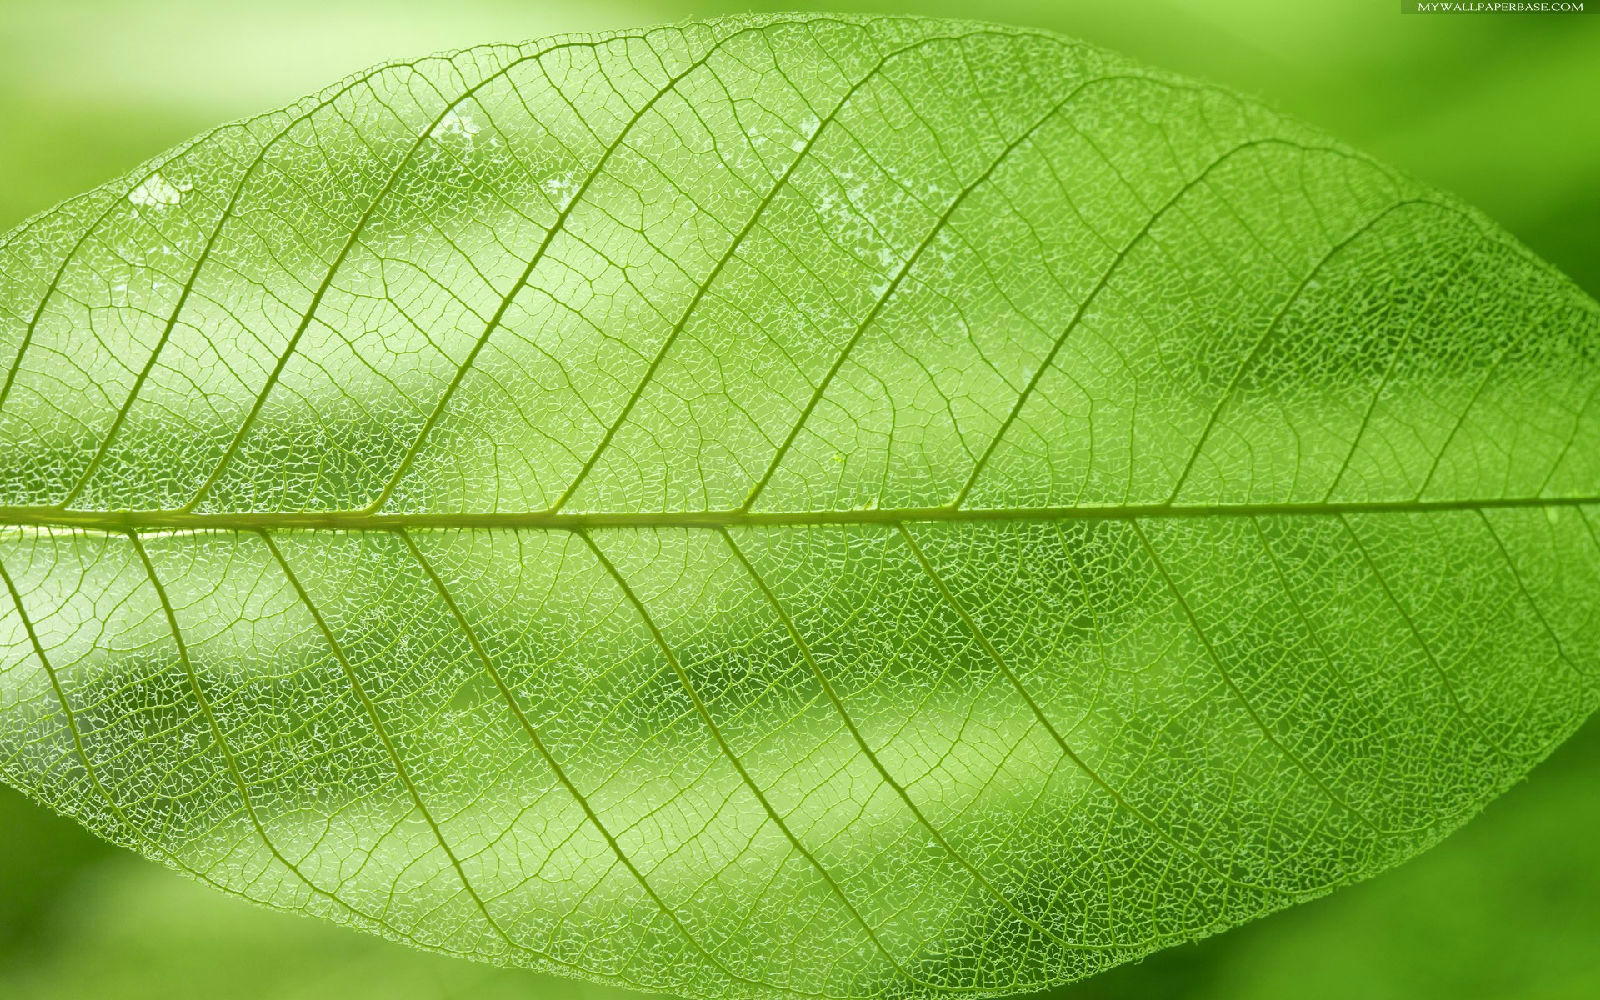 Leaf texture clipart 20 free Cliparts | Download images on Clipground 2020